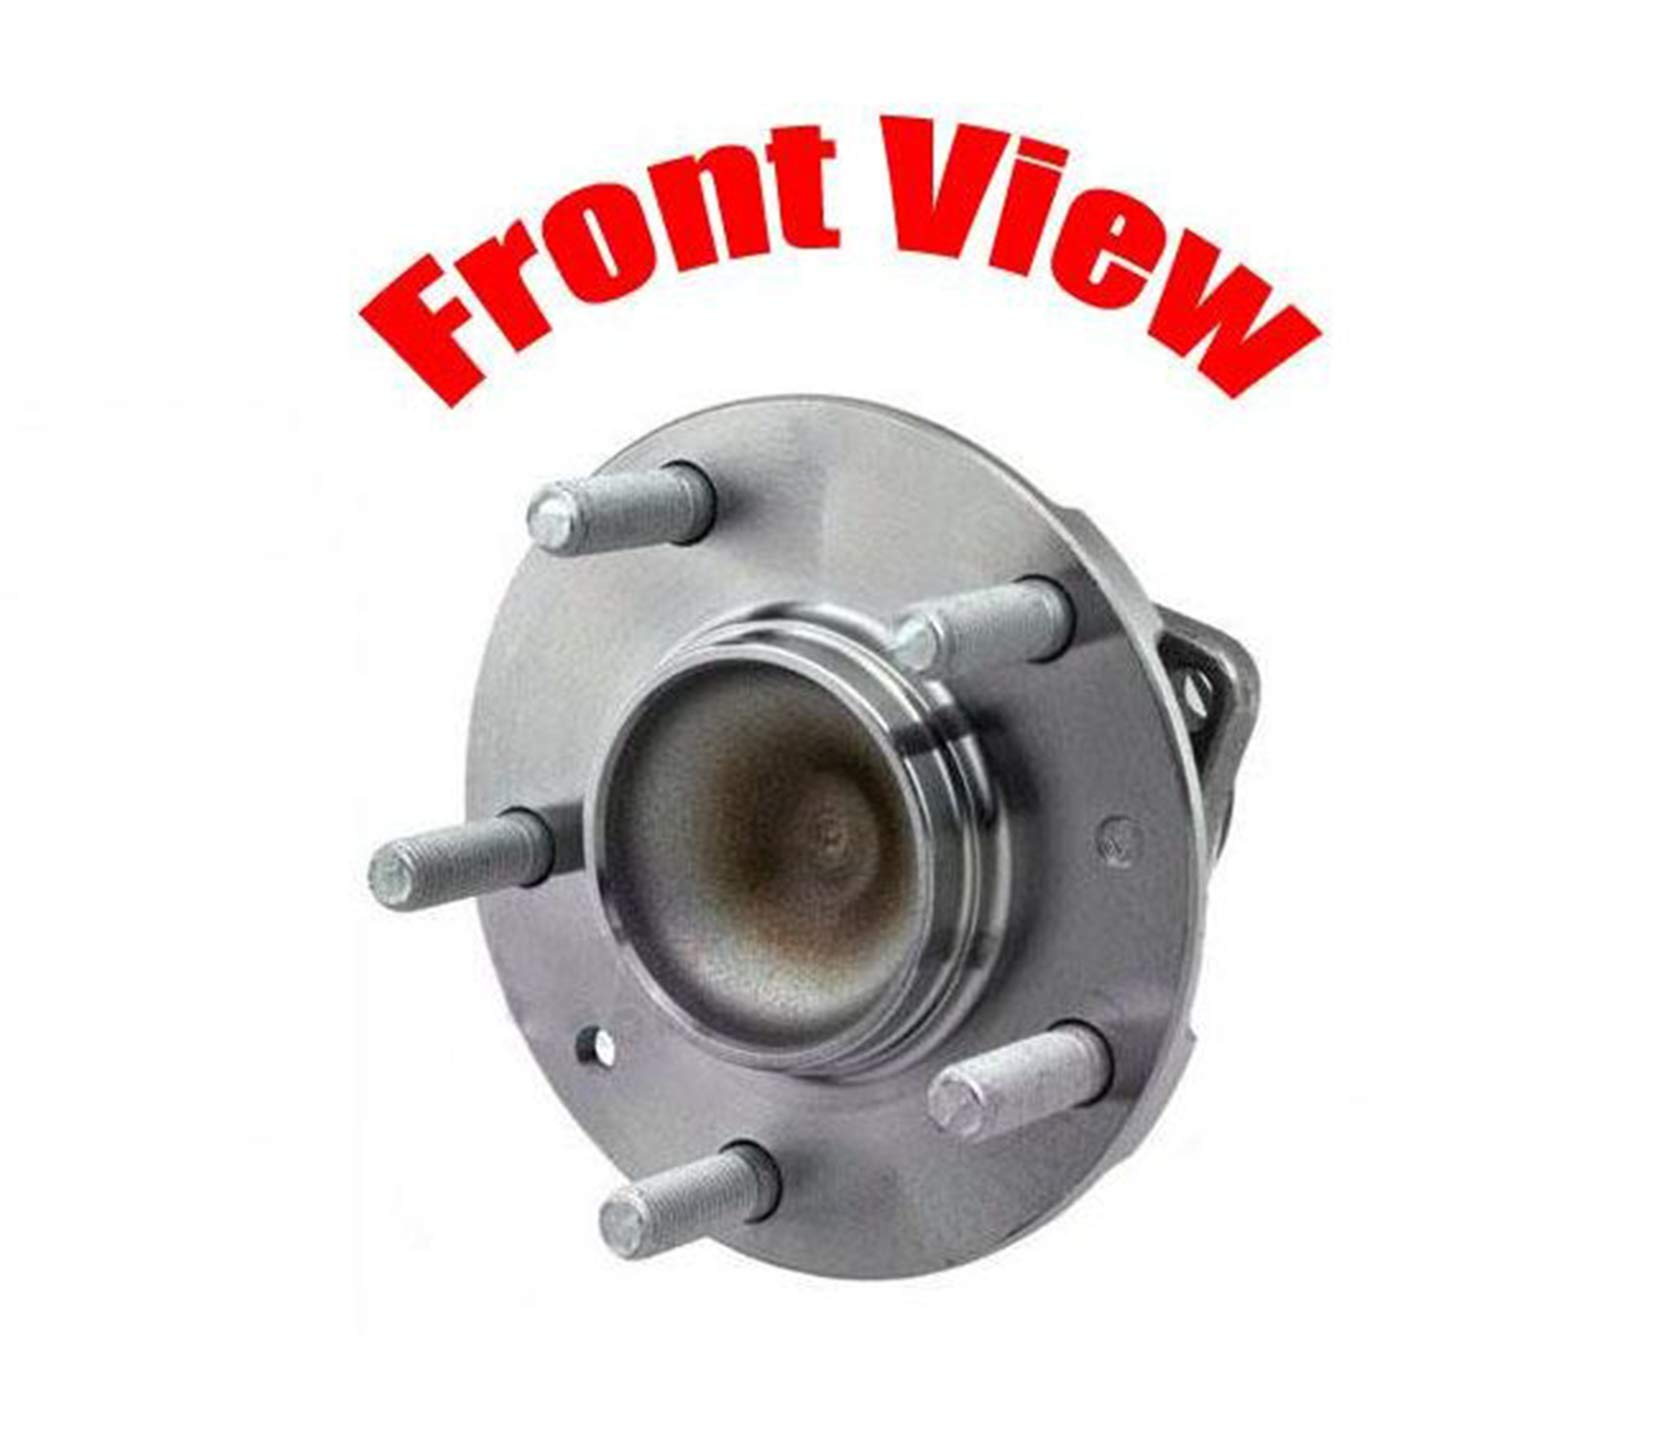 ONE New Front Wheel Hub Bearing for Mazda RX8 Without Stability Control 04-11 by Mac Auto Parts